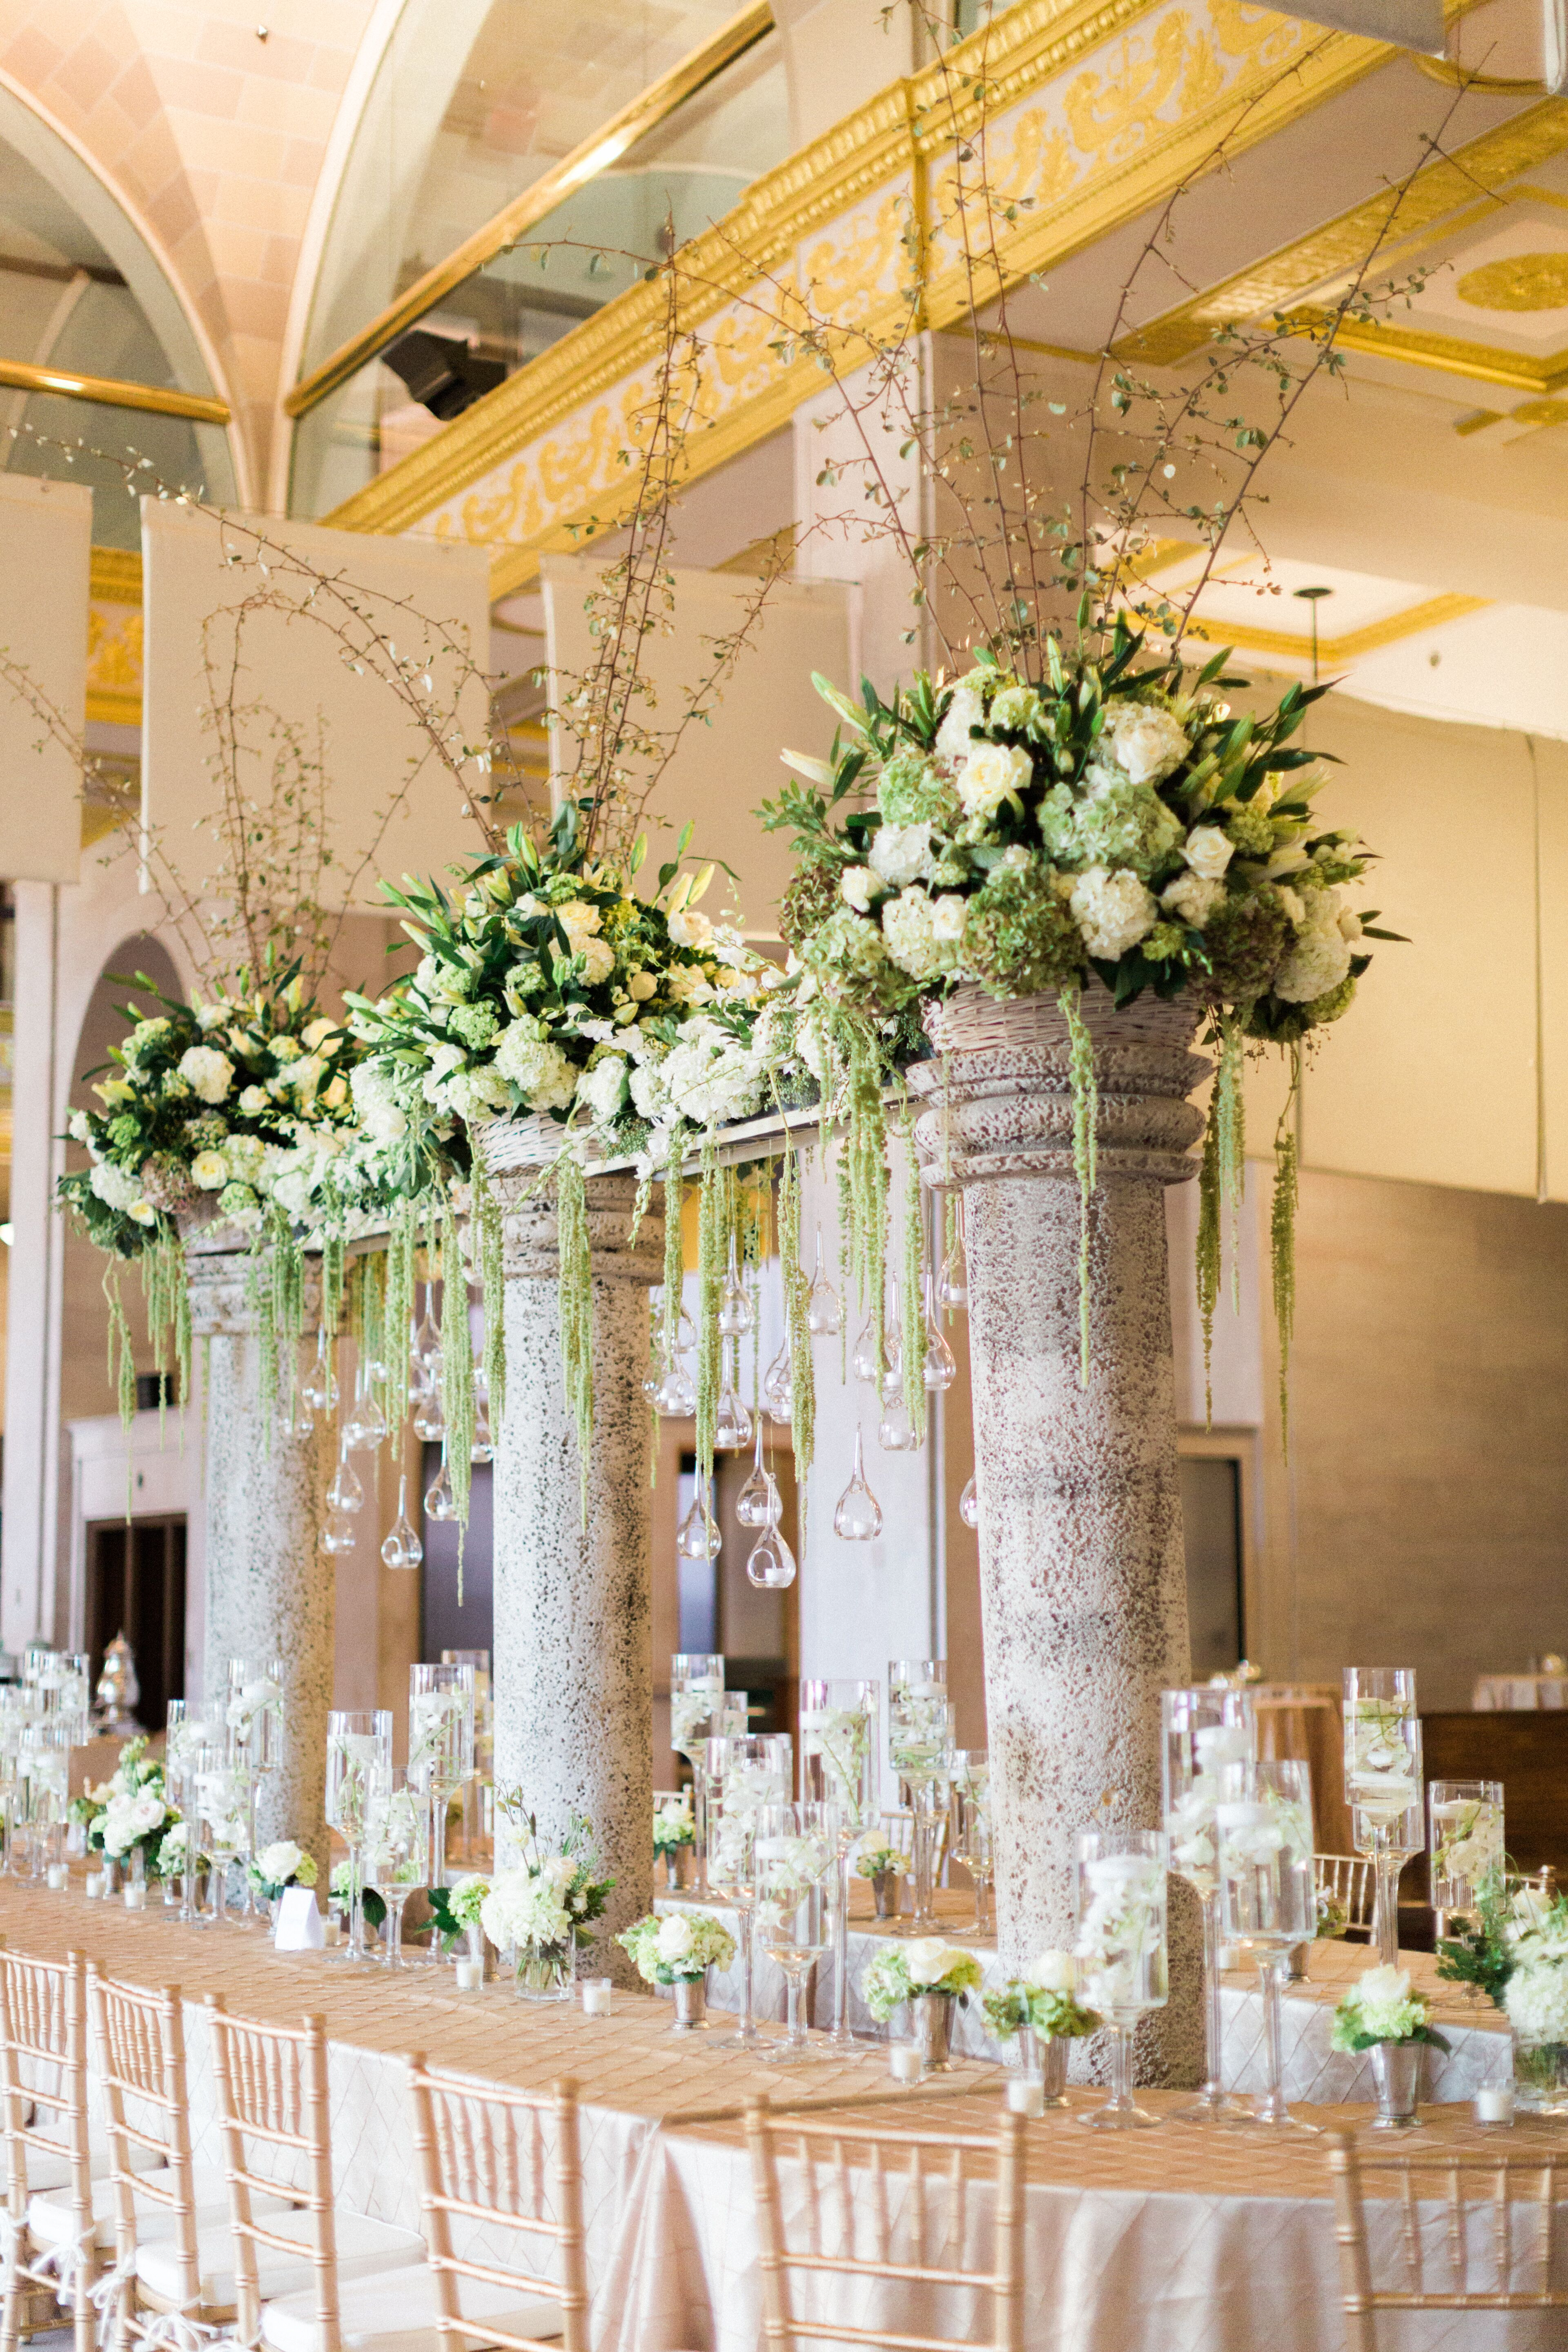 tall column centerpieces with hanging glass globes